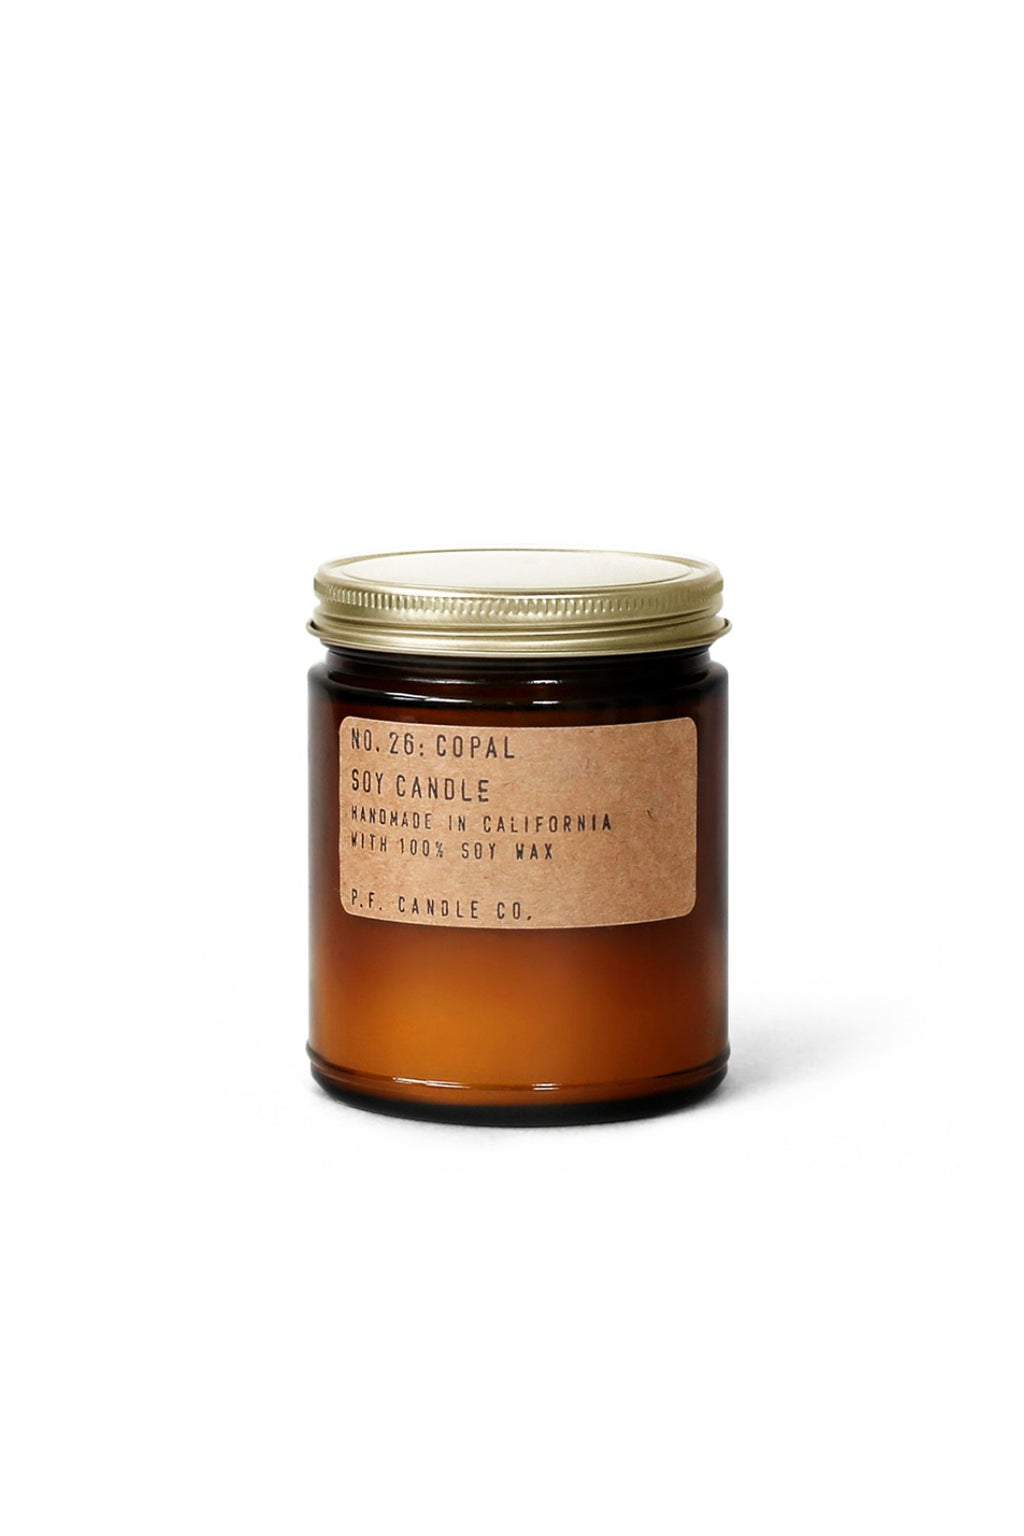 P.F. Candle Co. Mini Soy Candle - Copal